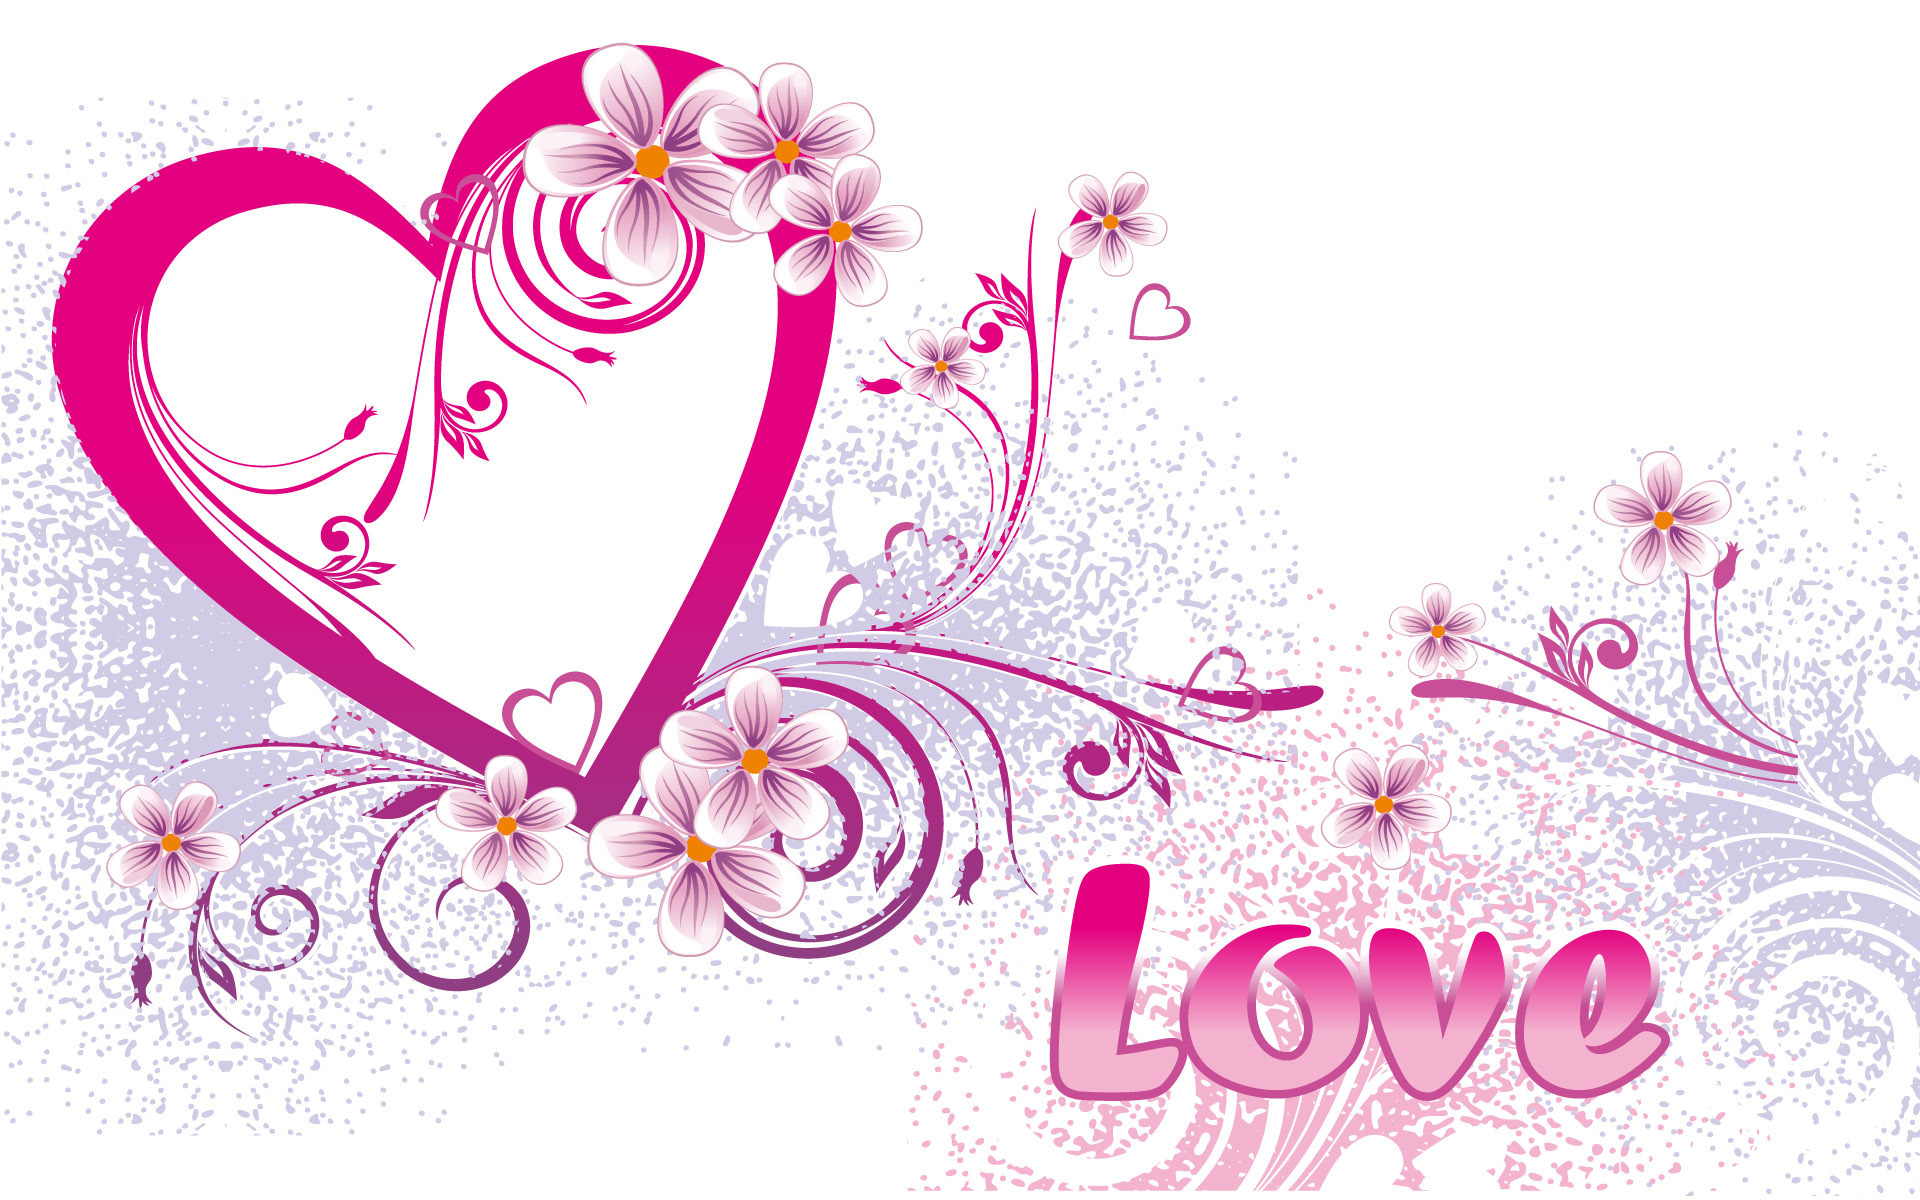 40 Romantic Love Wallpapers -DesignBump